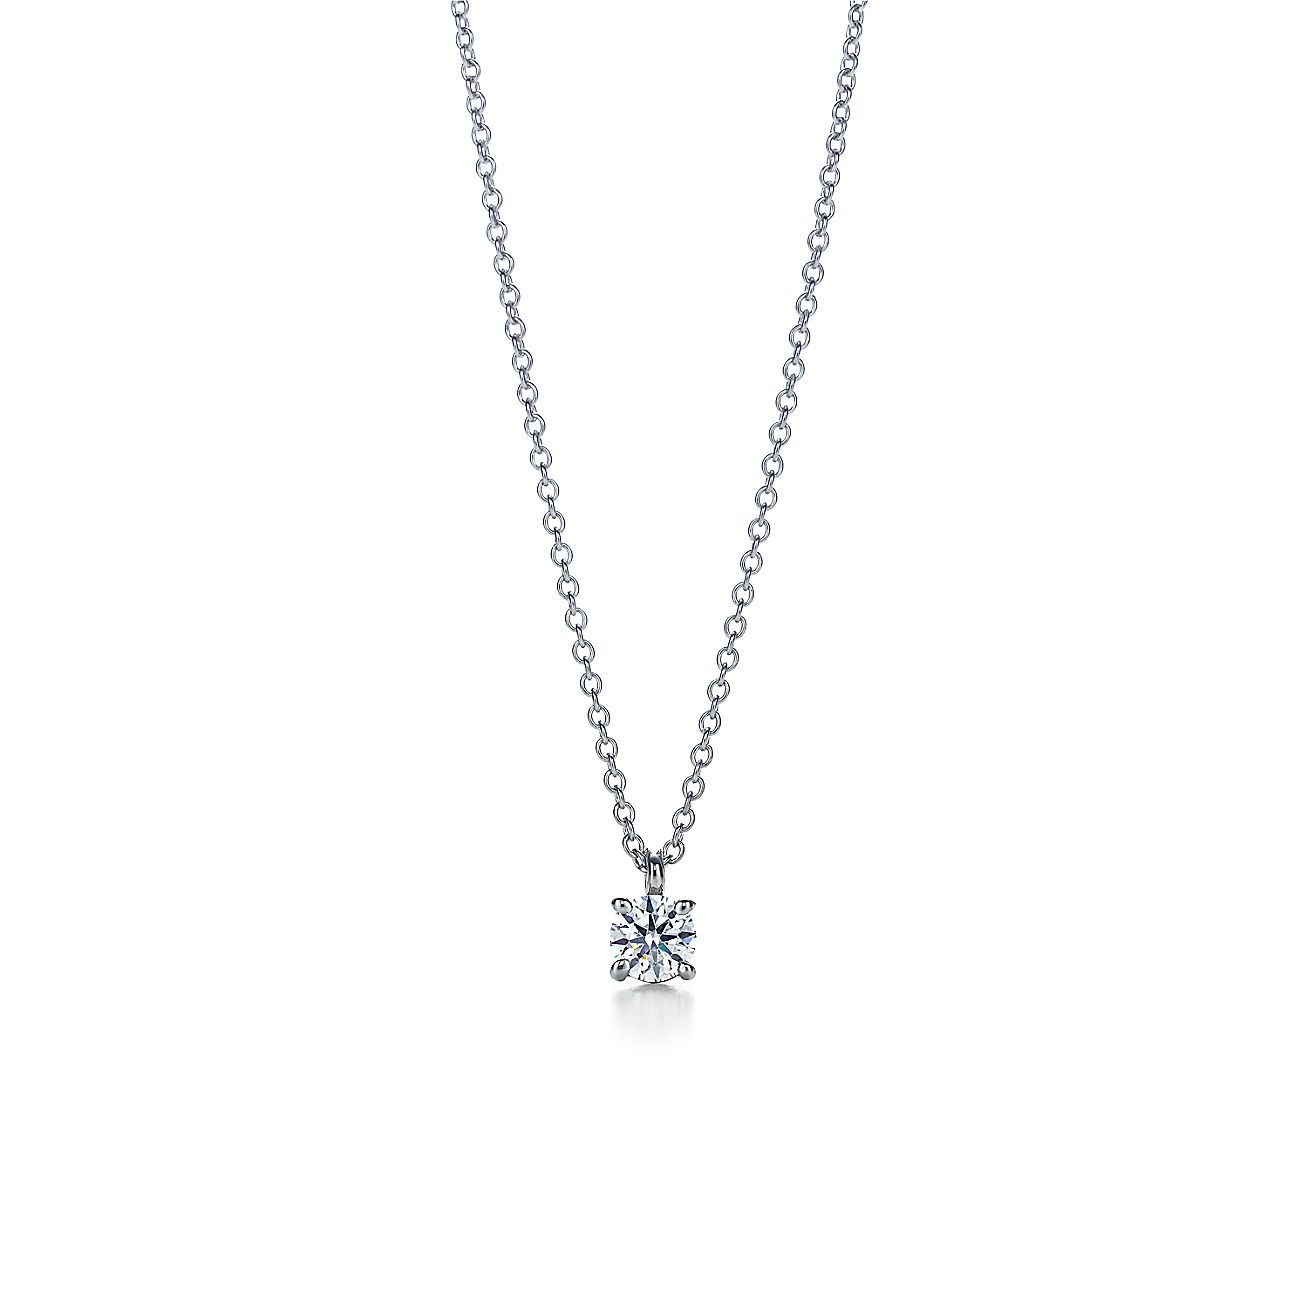 Tiffany Solitaire<br>Diamond Pendant